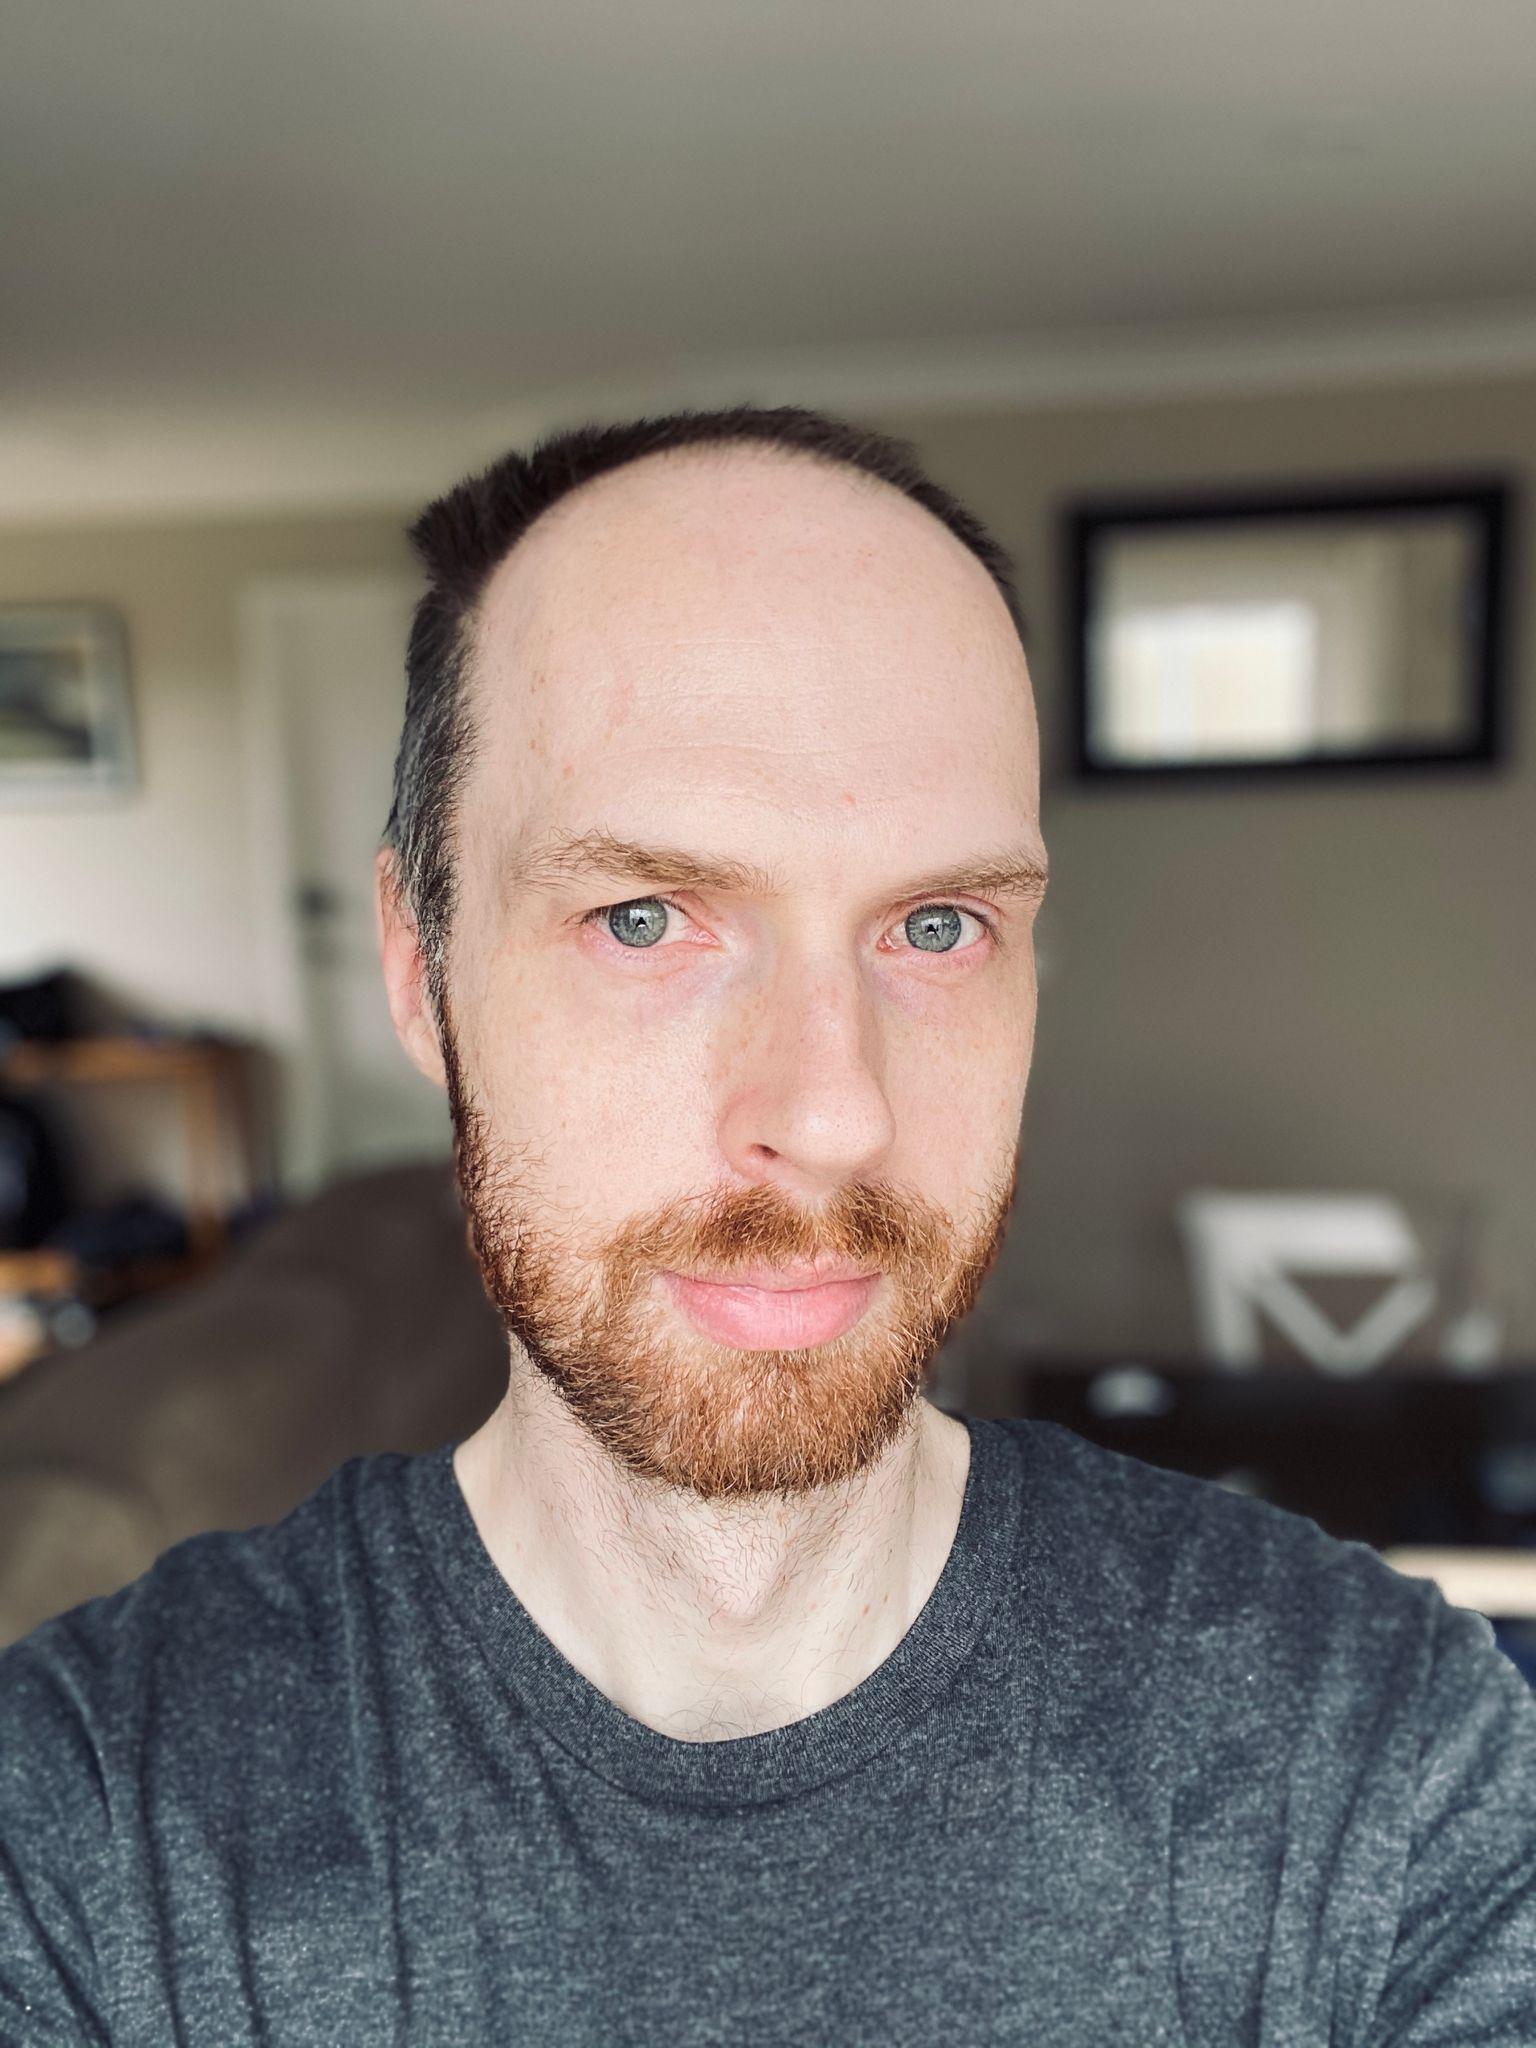 A selfie of me, a white man with a short but in-obvious-need-of-trim red beard and short hair that's also in need of a shave because it's starting to poke up at stupid angles.